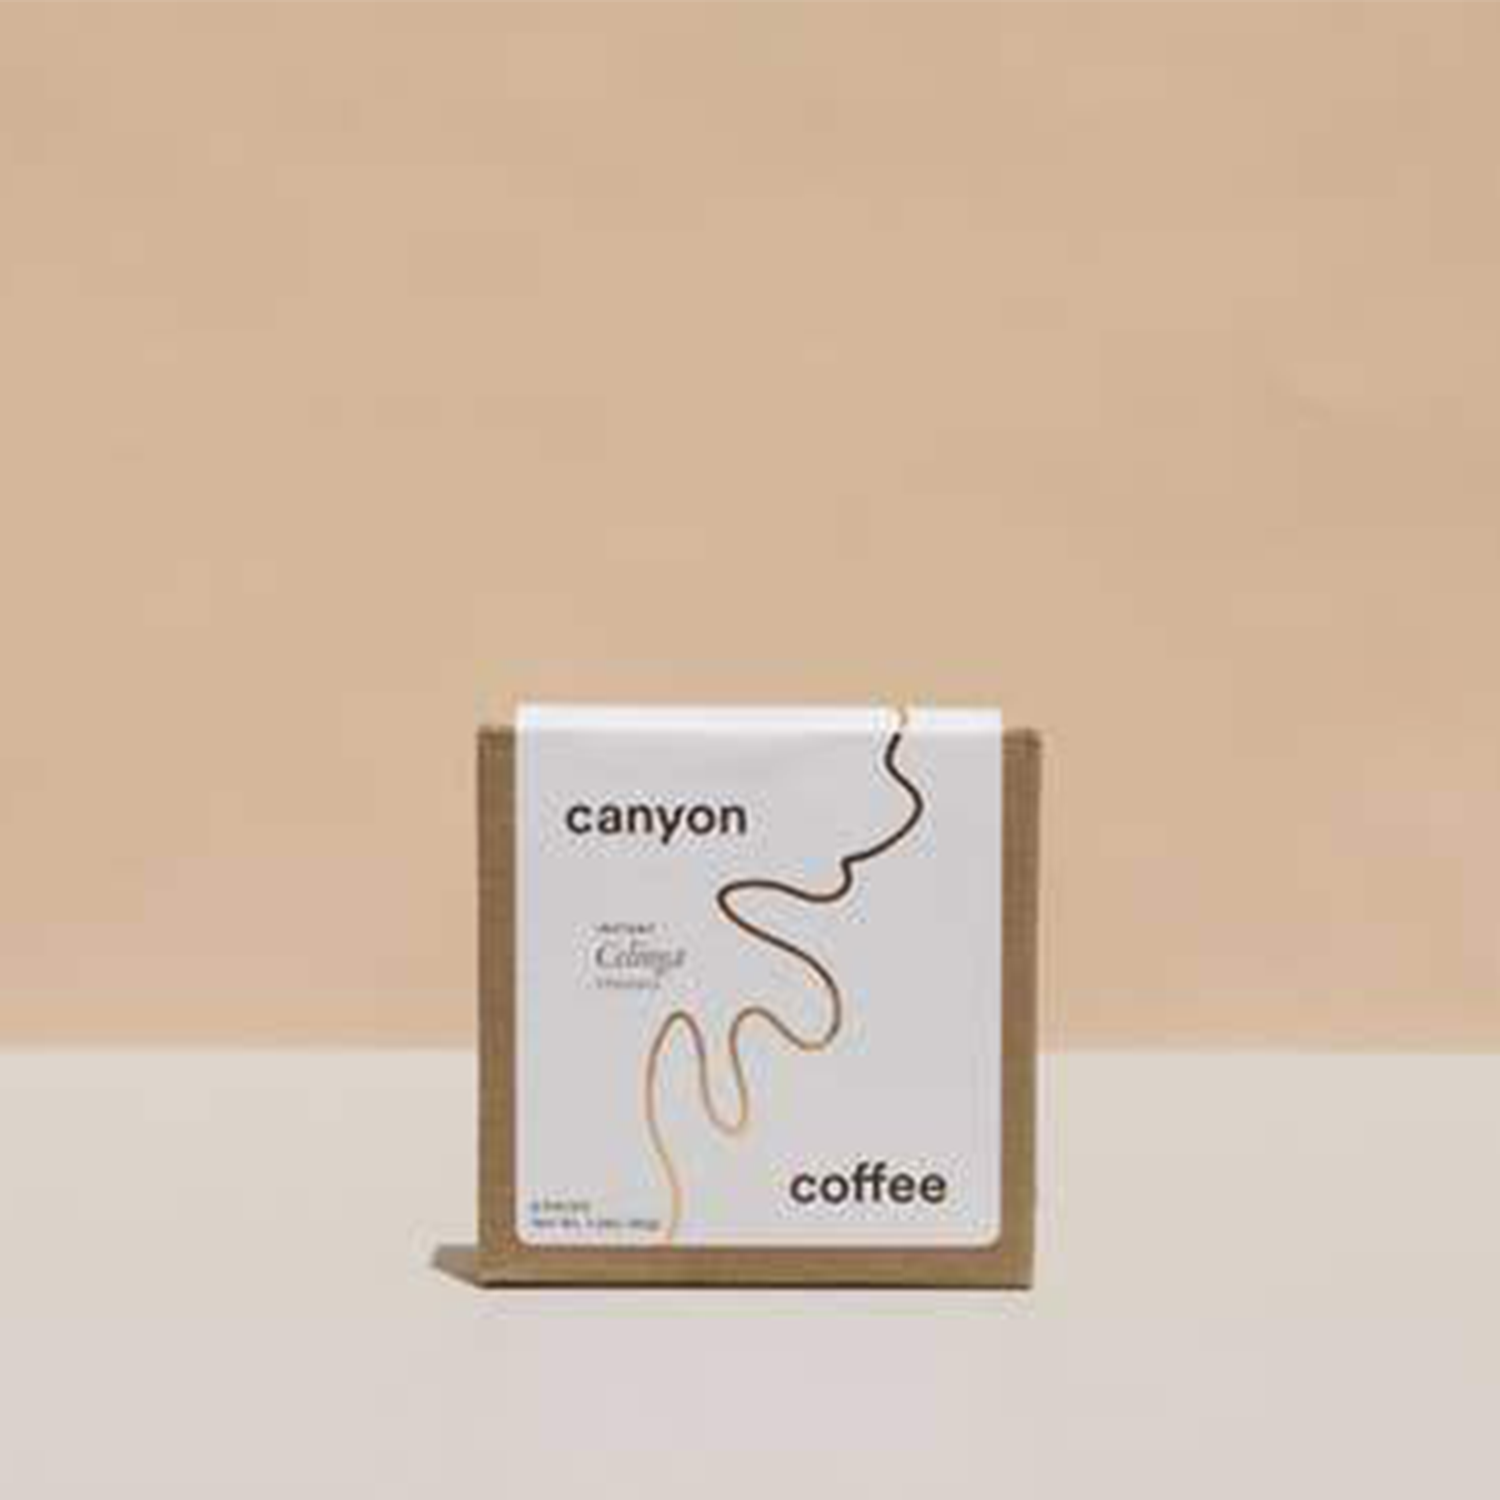 Canyon Instant Coffee (6 Pack)